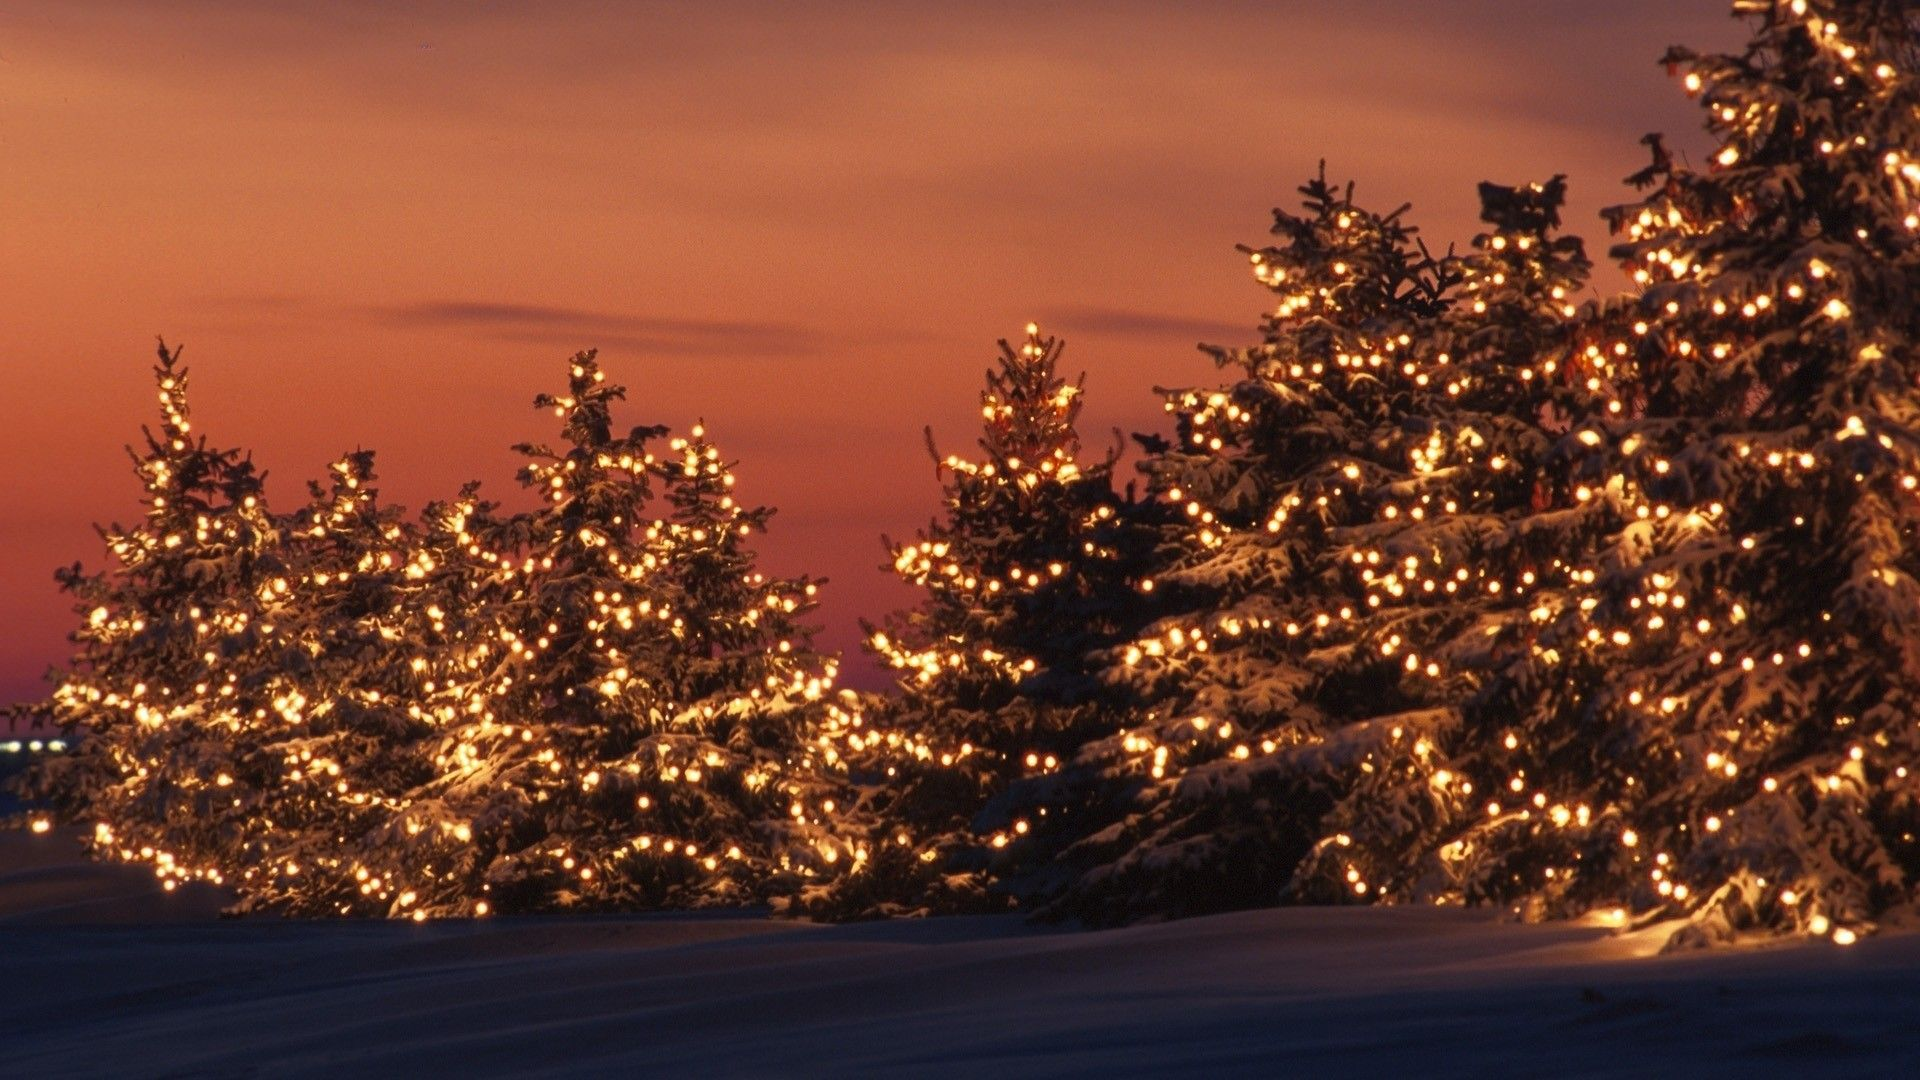 1920x1080 Winter Christmas Backgrounds ·①